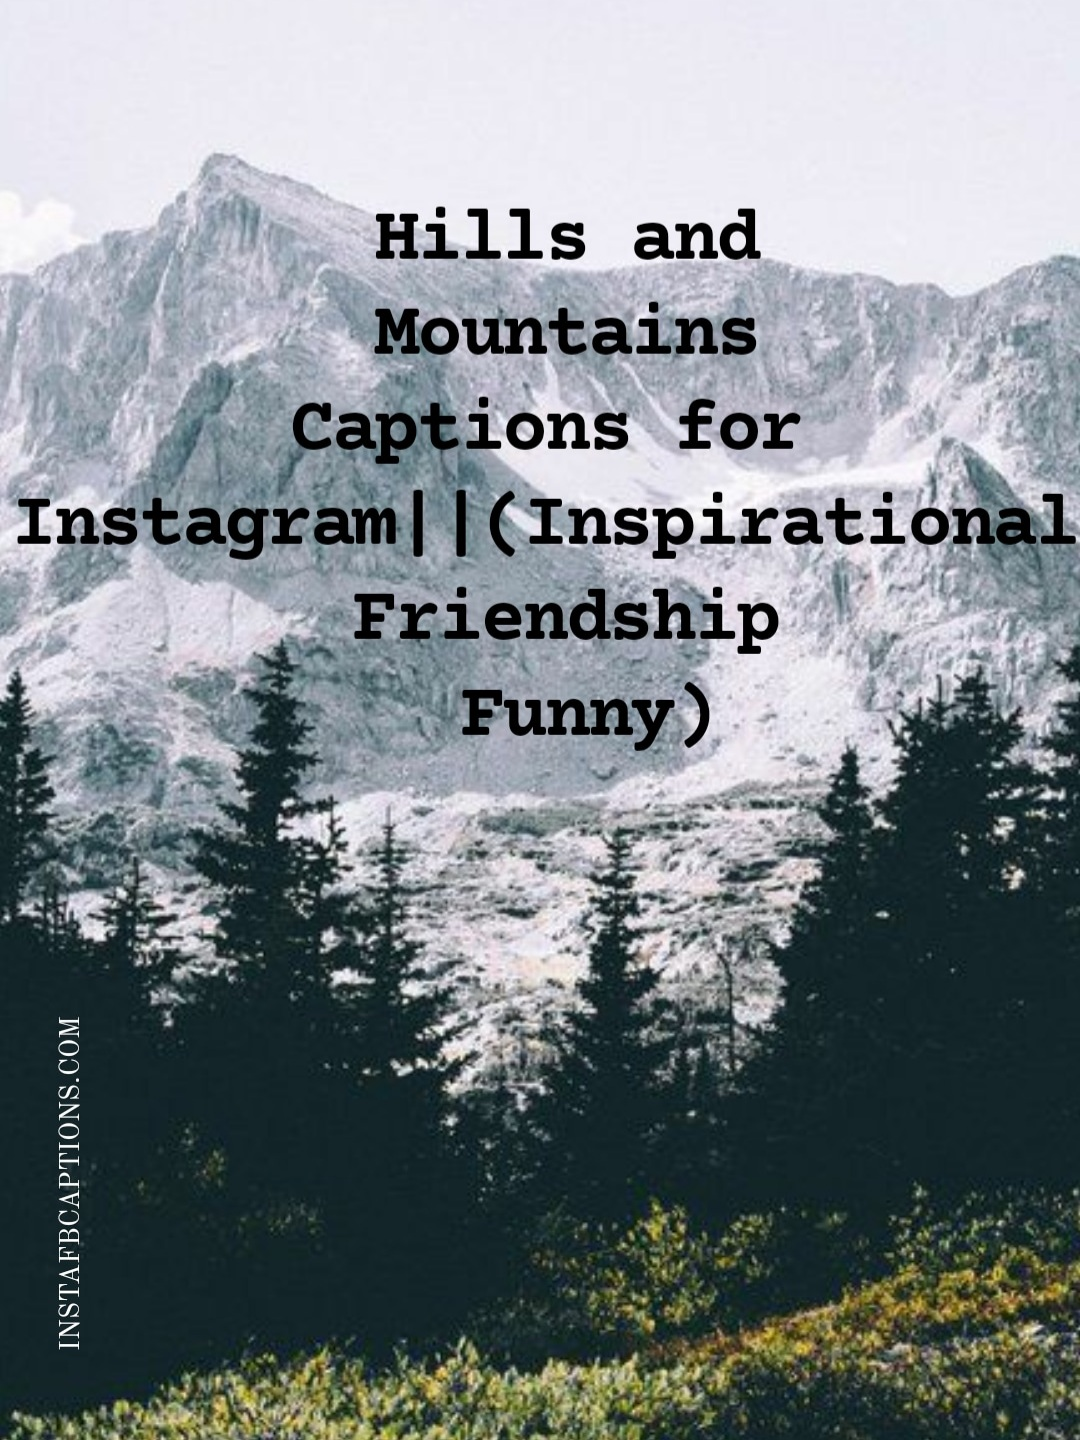 Hills and Mountains Captions for Instagram ||(Inspirational Friendship Funny)